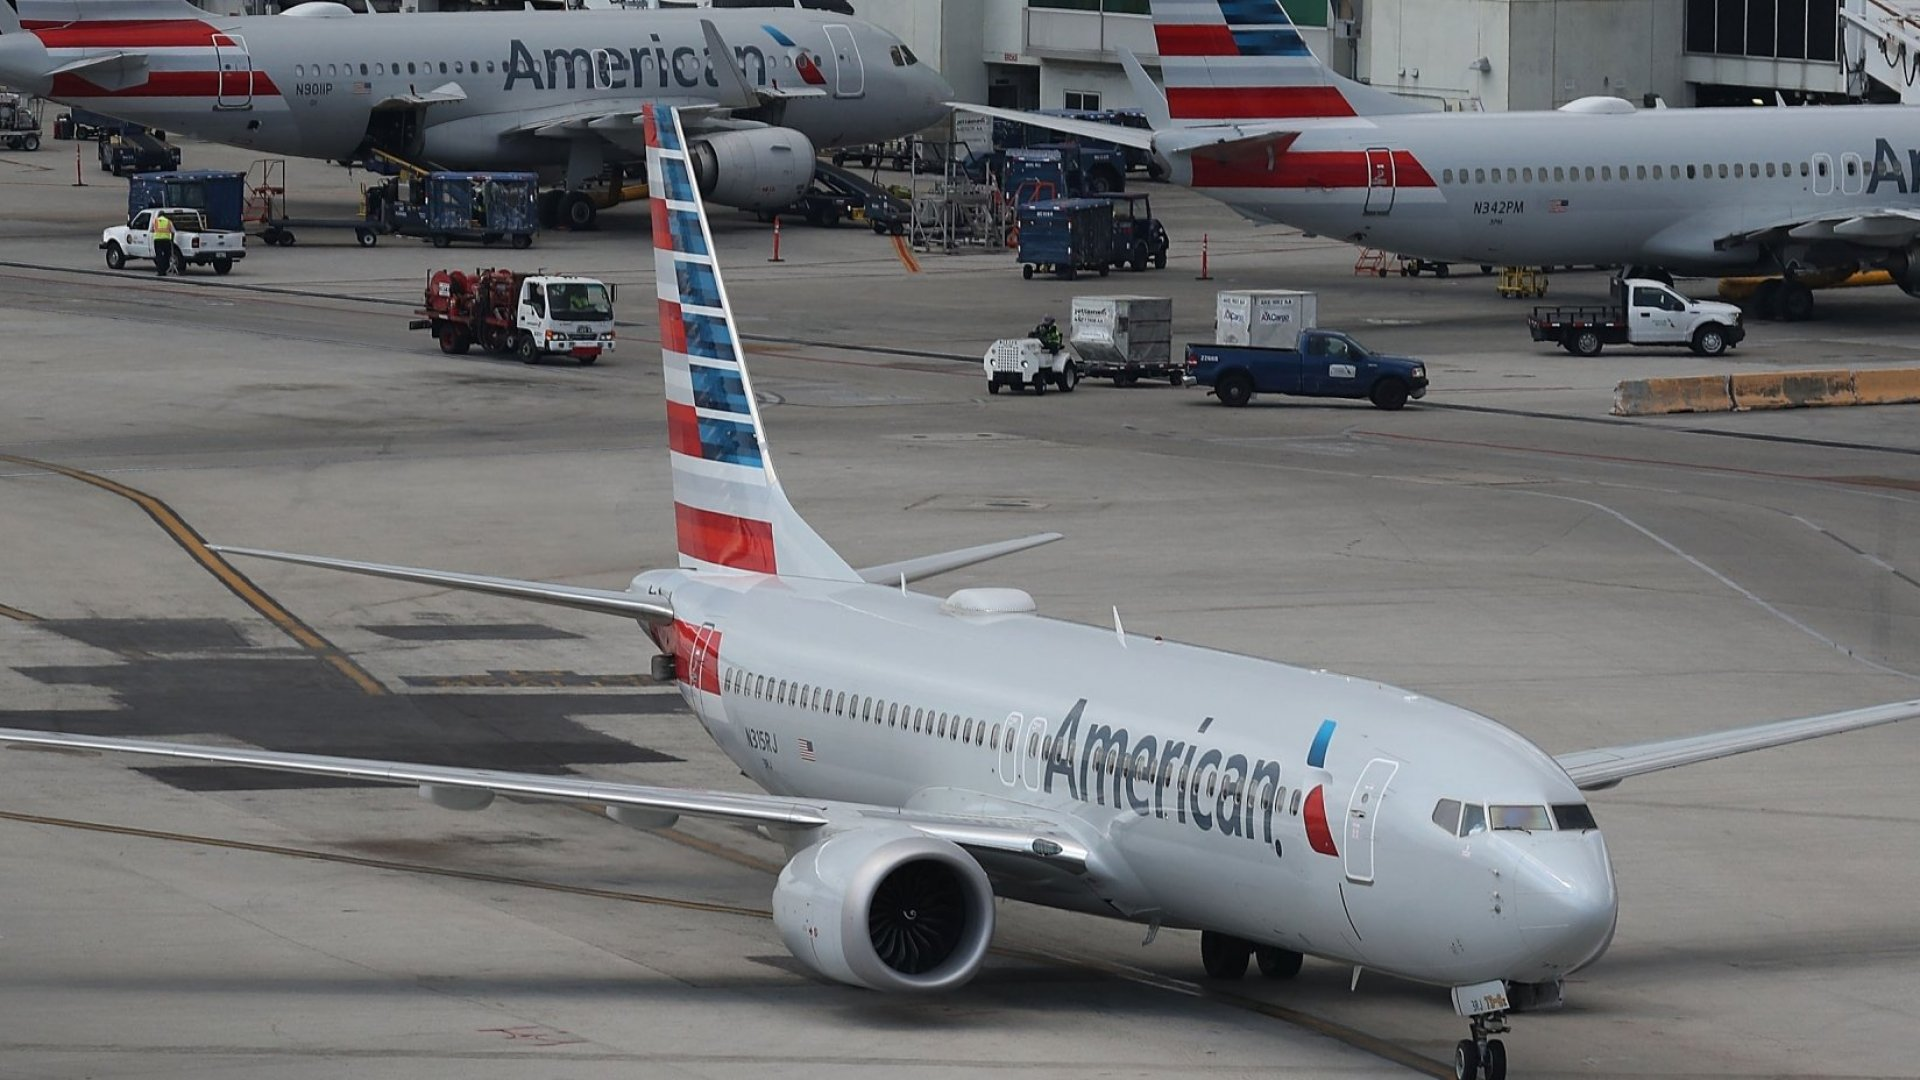 In a Secret Audio, These American Airlines Pilots Revealed Their True Thoughts About a Very Controversial Subject. (Passengers Won't Know What to Think)